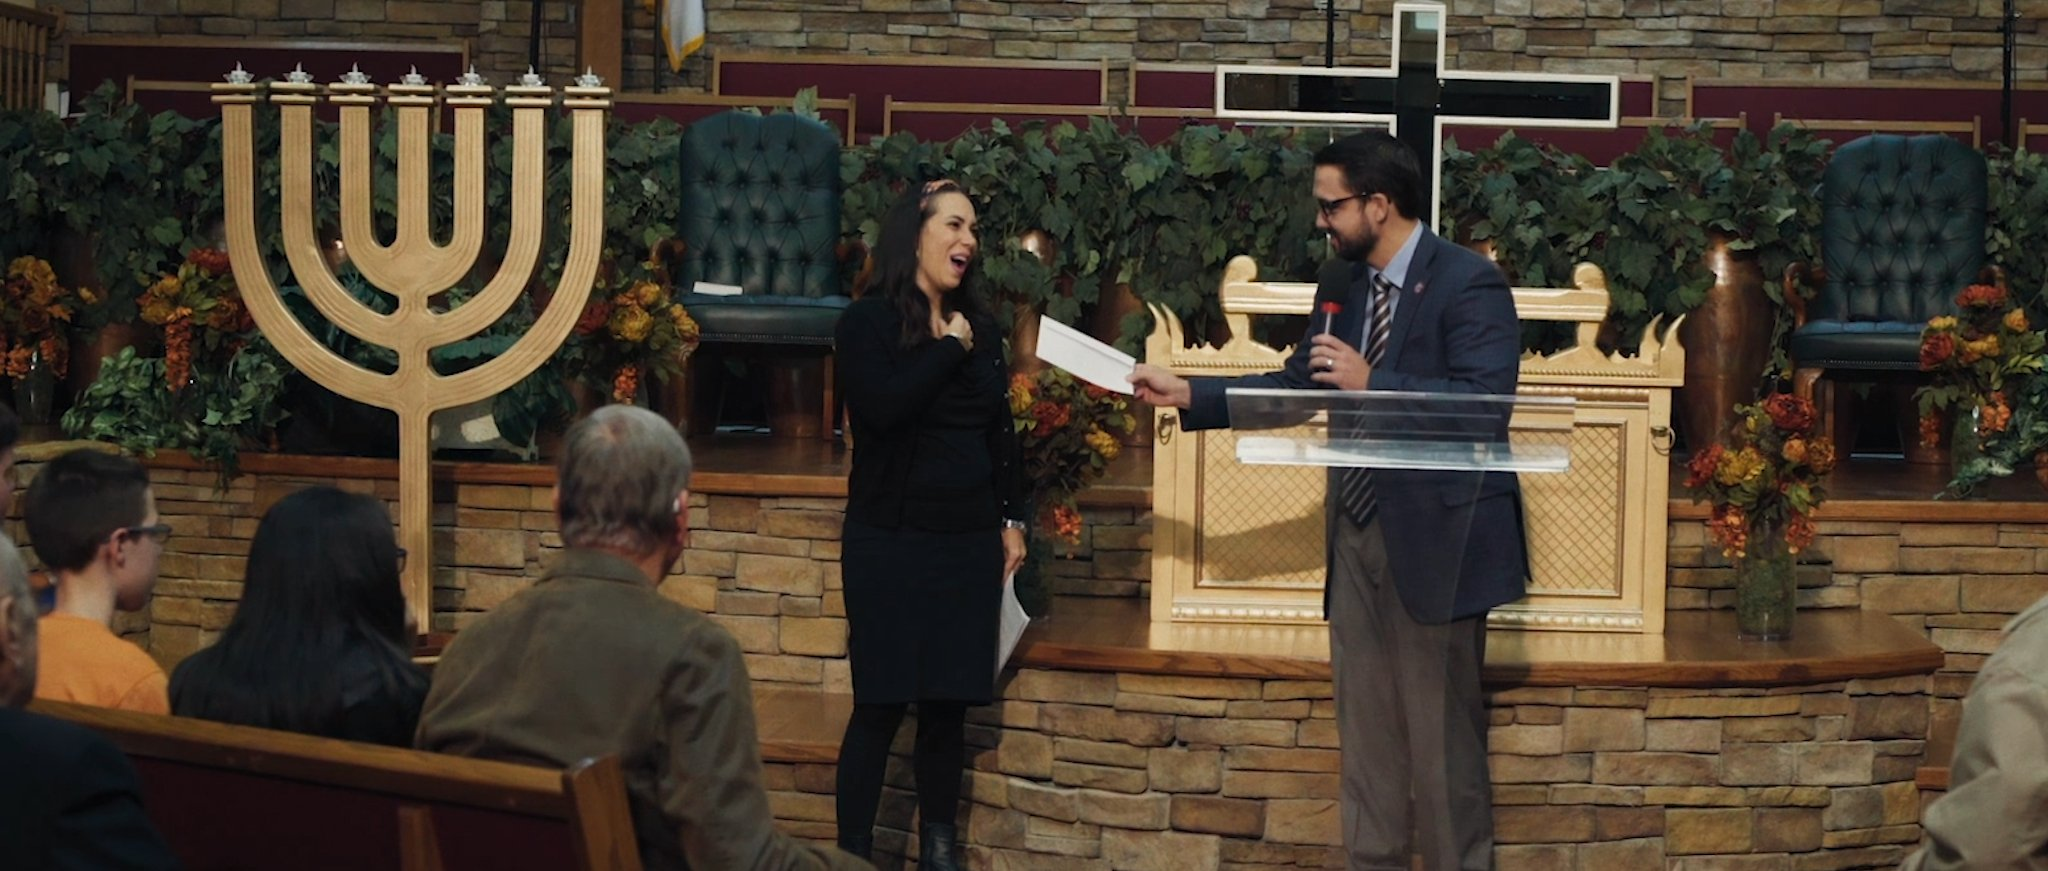 Yael Eckstein receives a $25,000 donation from the community in Middlesboro, Kentucky [Til Kingdom Come]